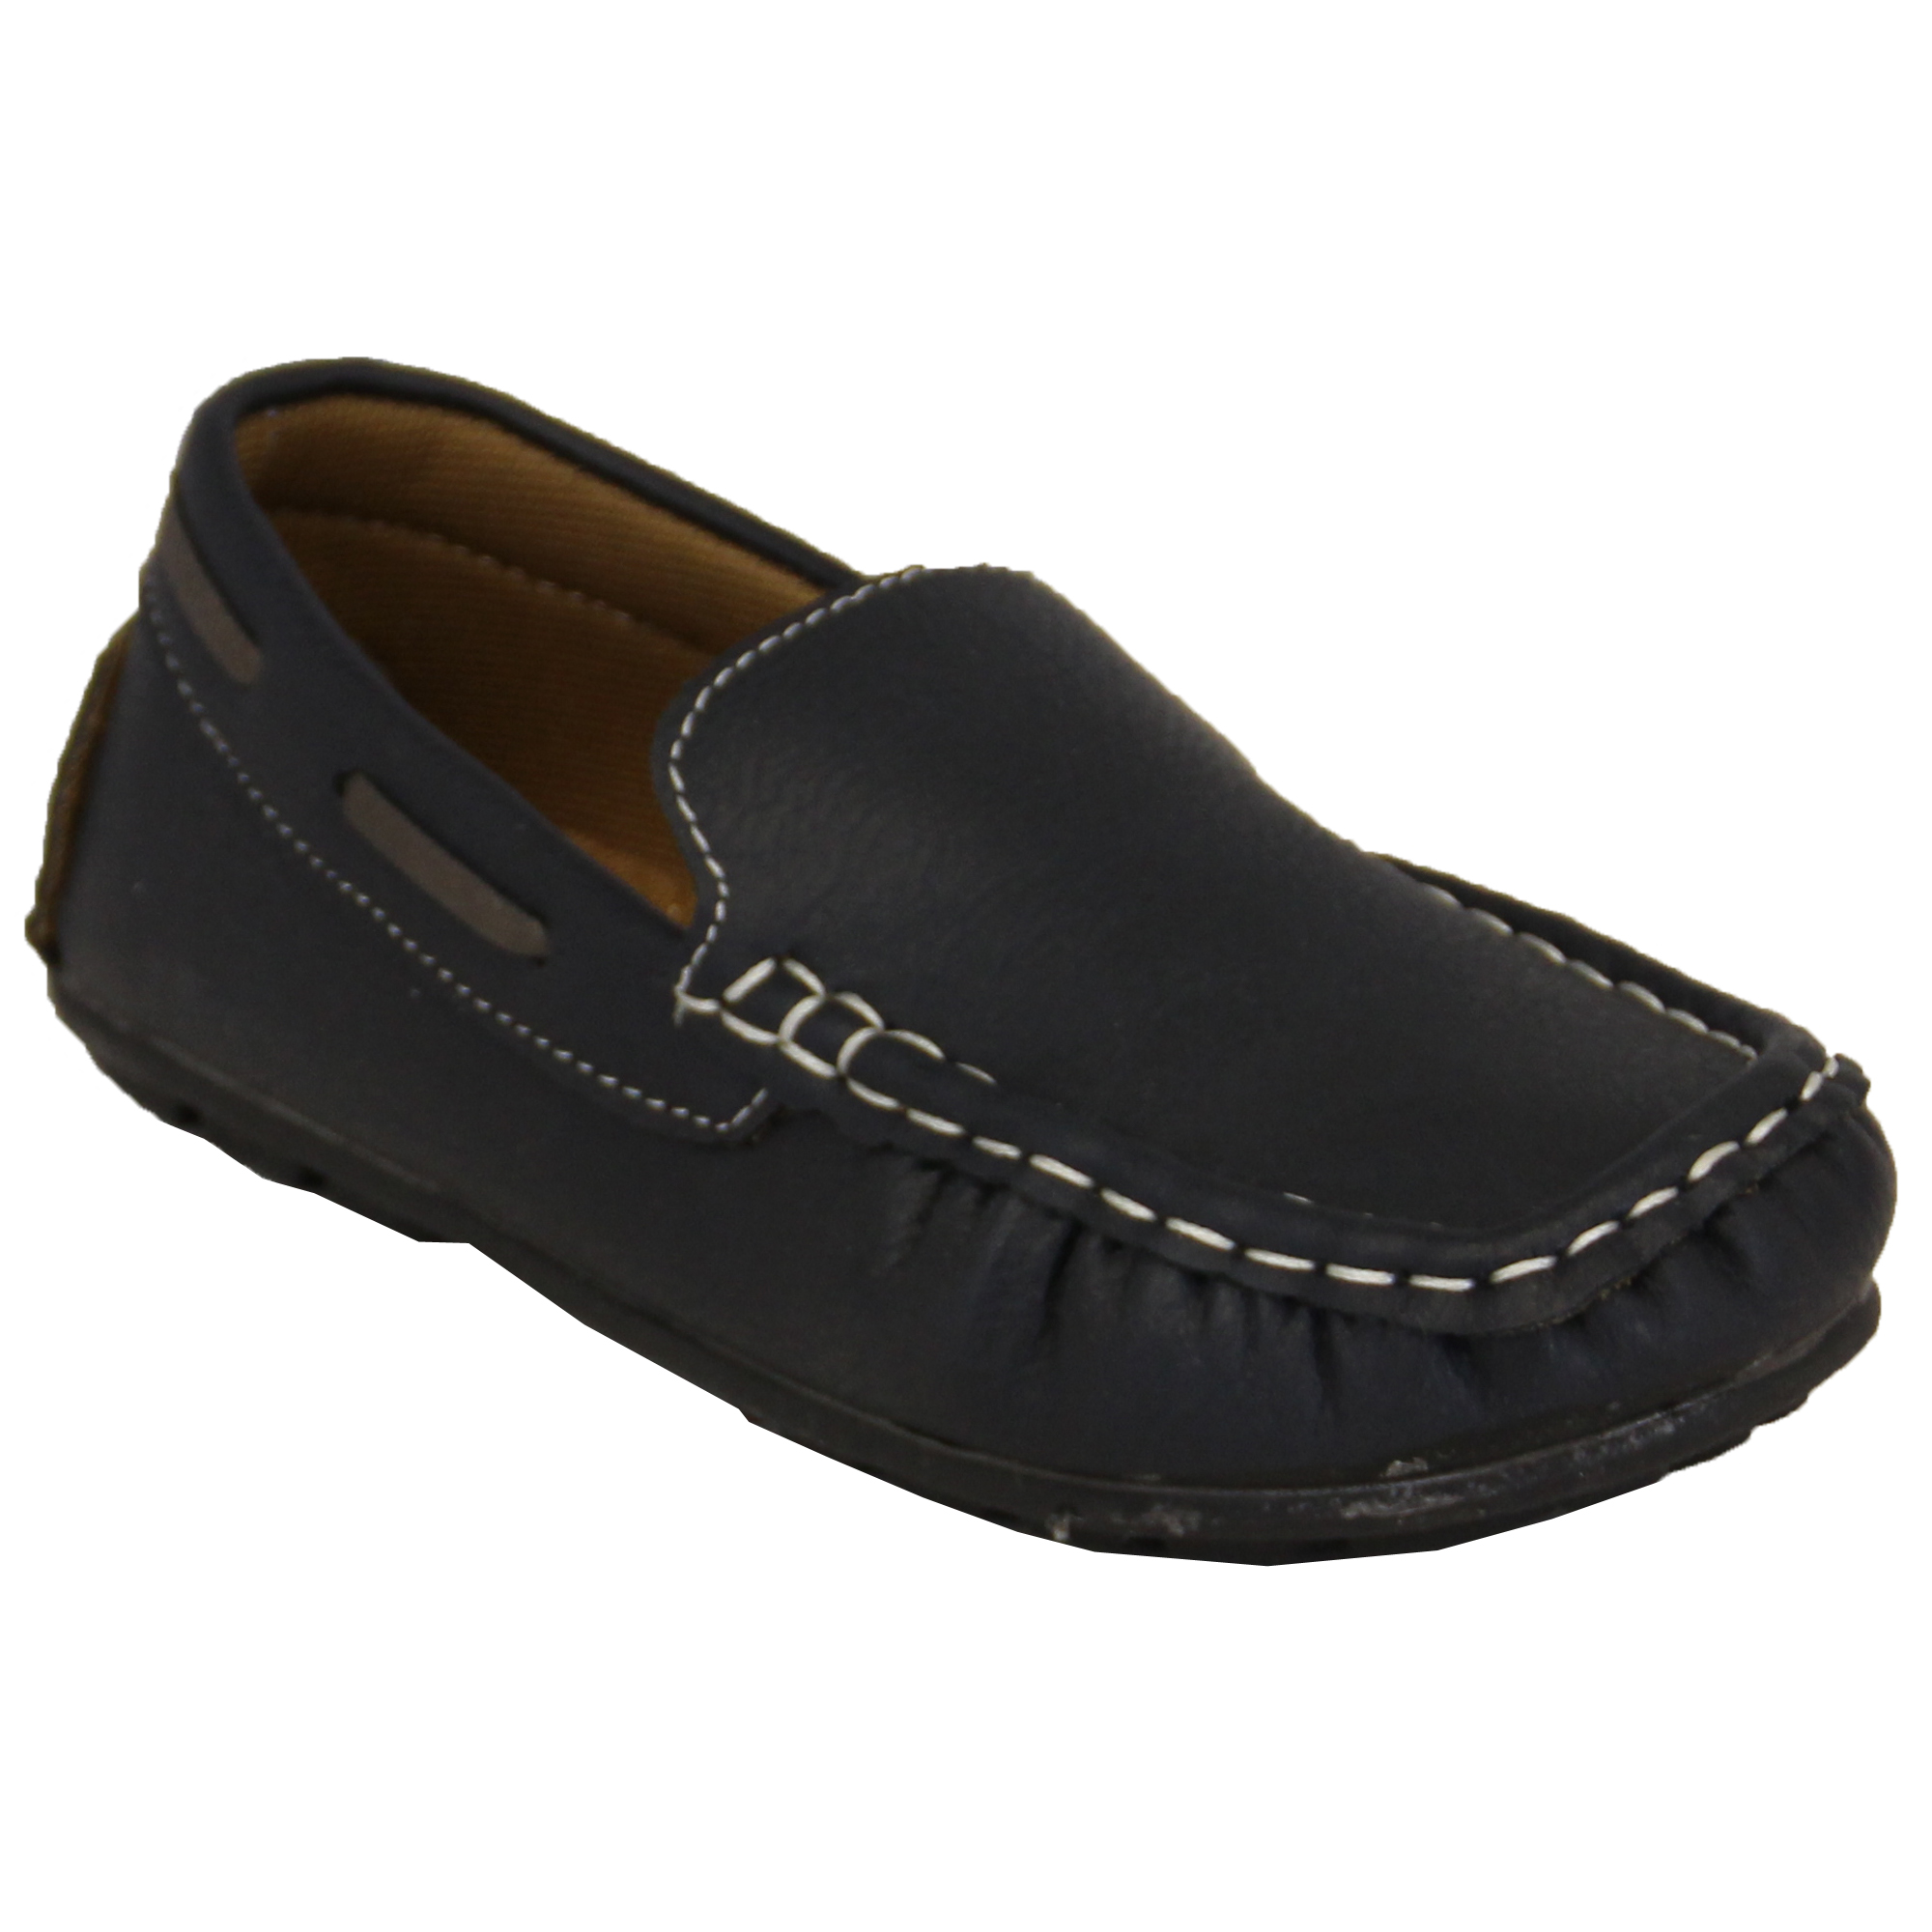 All About Bare Soles Moccs! Welcome to Bare Soles Moccasins, the best place to go for genuine leather moccasins for your infant and toddler. Located in Las Vegas, Nevada, local owner and mom of 2, handcrafts each pair personally.